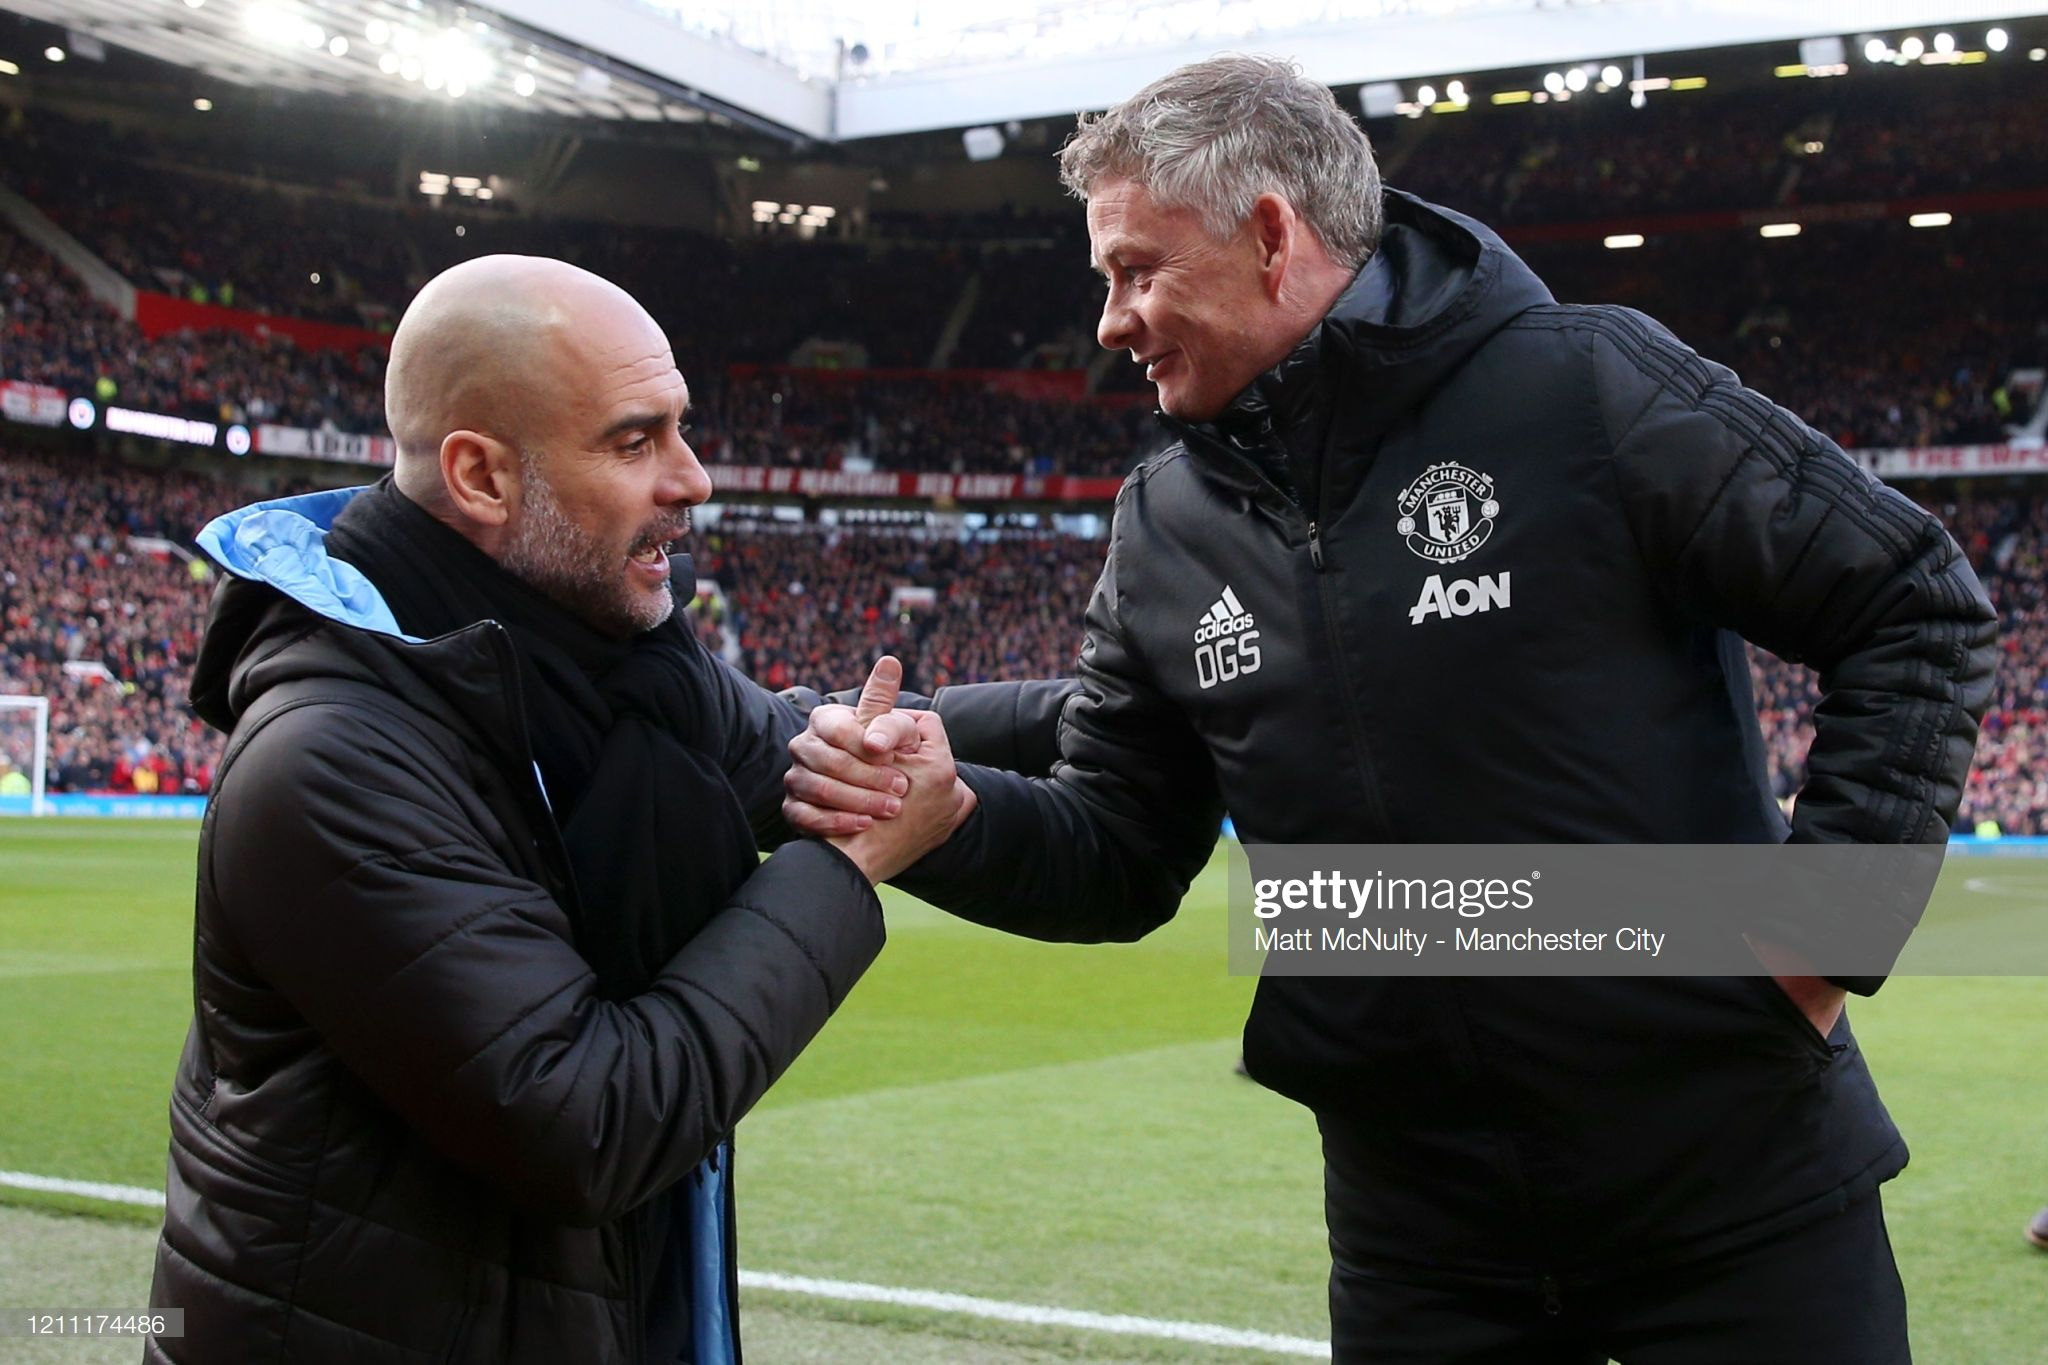 Pep Guardiola Manager Of Manchester City Shakes Hands With Ole In 2020 Manchester City Manchester Pep Guardiola